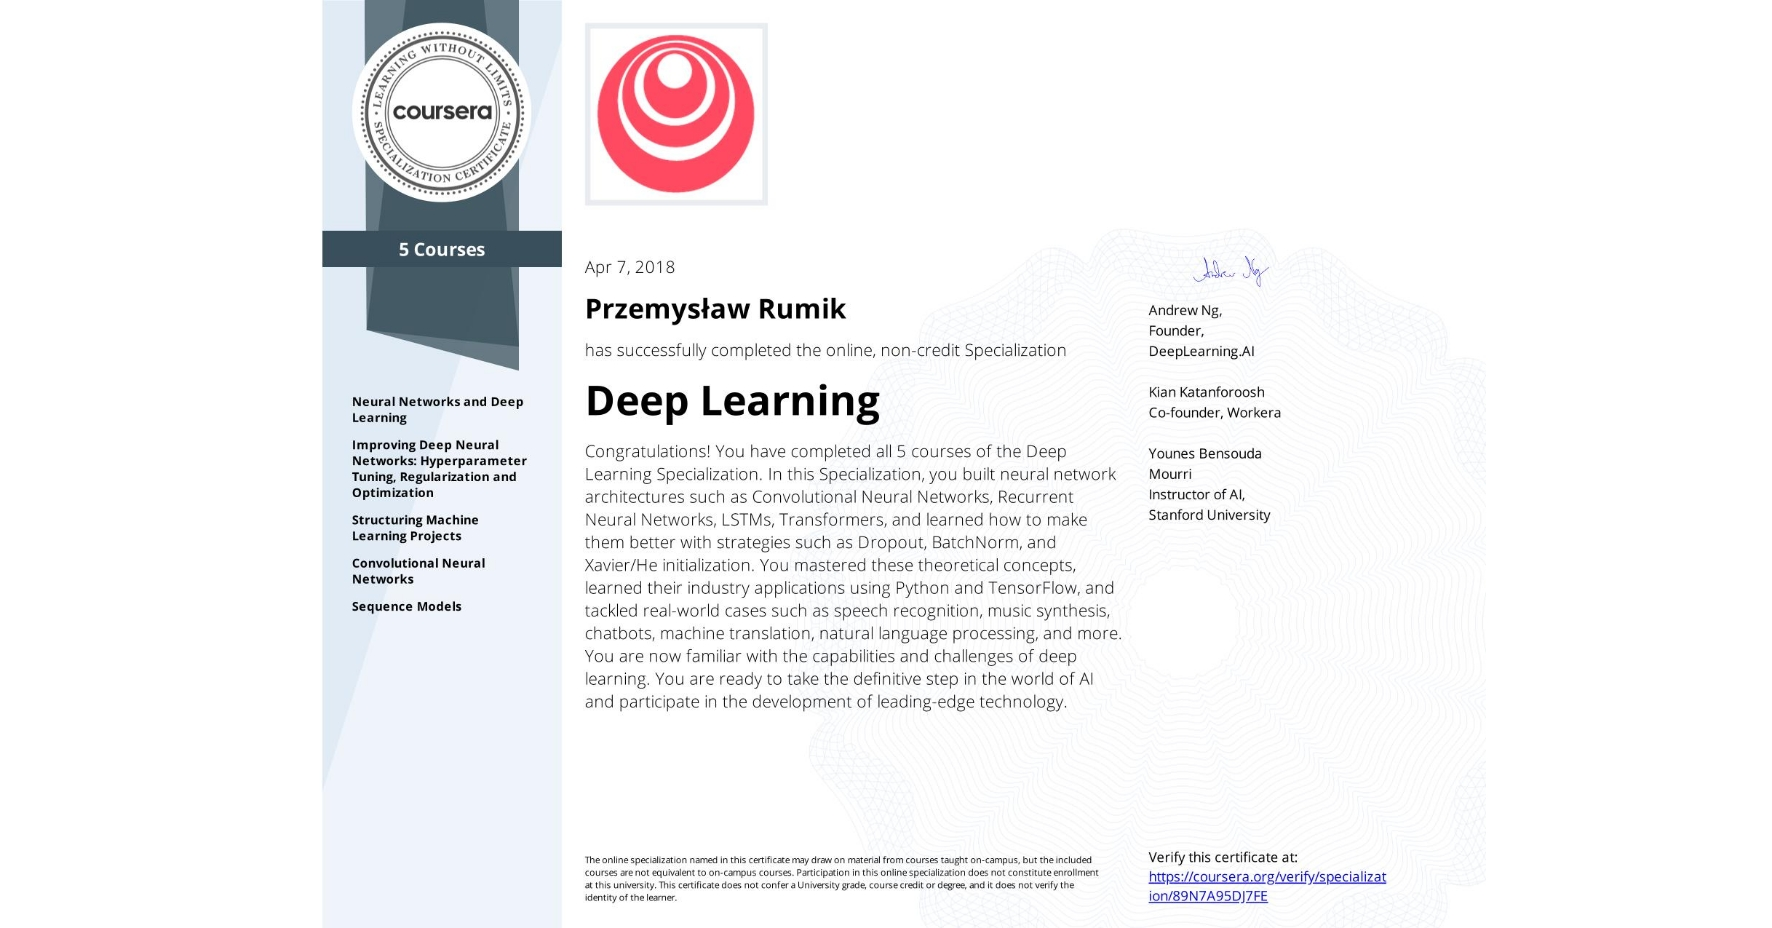 View certificate for Przemysław Rumik, Deep Learning, offered through Coursera. Congratulations! You have completed all 5 courses of the Deep Learning Specialization.  In this Specialization, you built neural network architectures such as Convolutional Neural Networks, Recurrent Neural Networks, LSTMs, Transformers, and learned how to make them better with strategies such as Dropout, BatchNorm, and Xavier/He initialization. You mastered these theoretical concepts, learned their industry applications using Python and TensorFlow, and tackled real-world cases such as speech recognition, music synthesis, chatbots, machine translation, natural language processing, and more.  You are now familiar with the capabilities and challenges of deep learning. You are ready to take the definitive step in the world of AI and participate in the development of leading-edge technology.